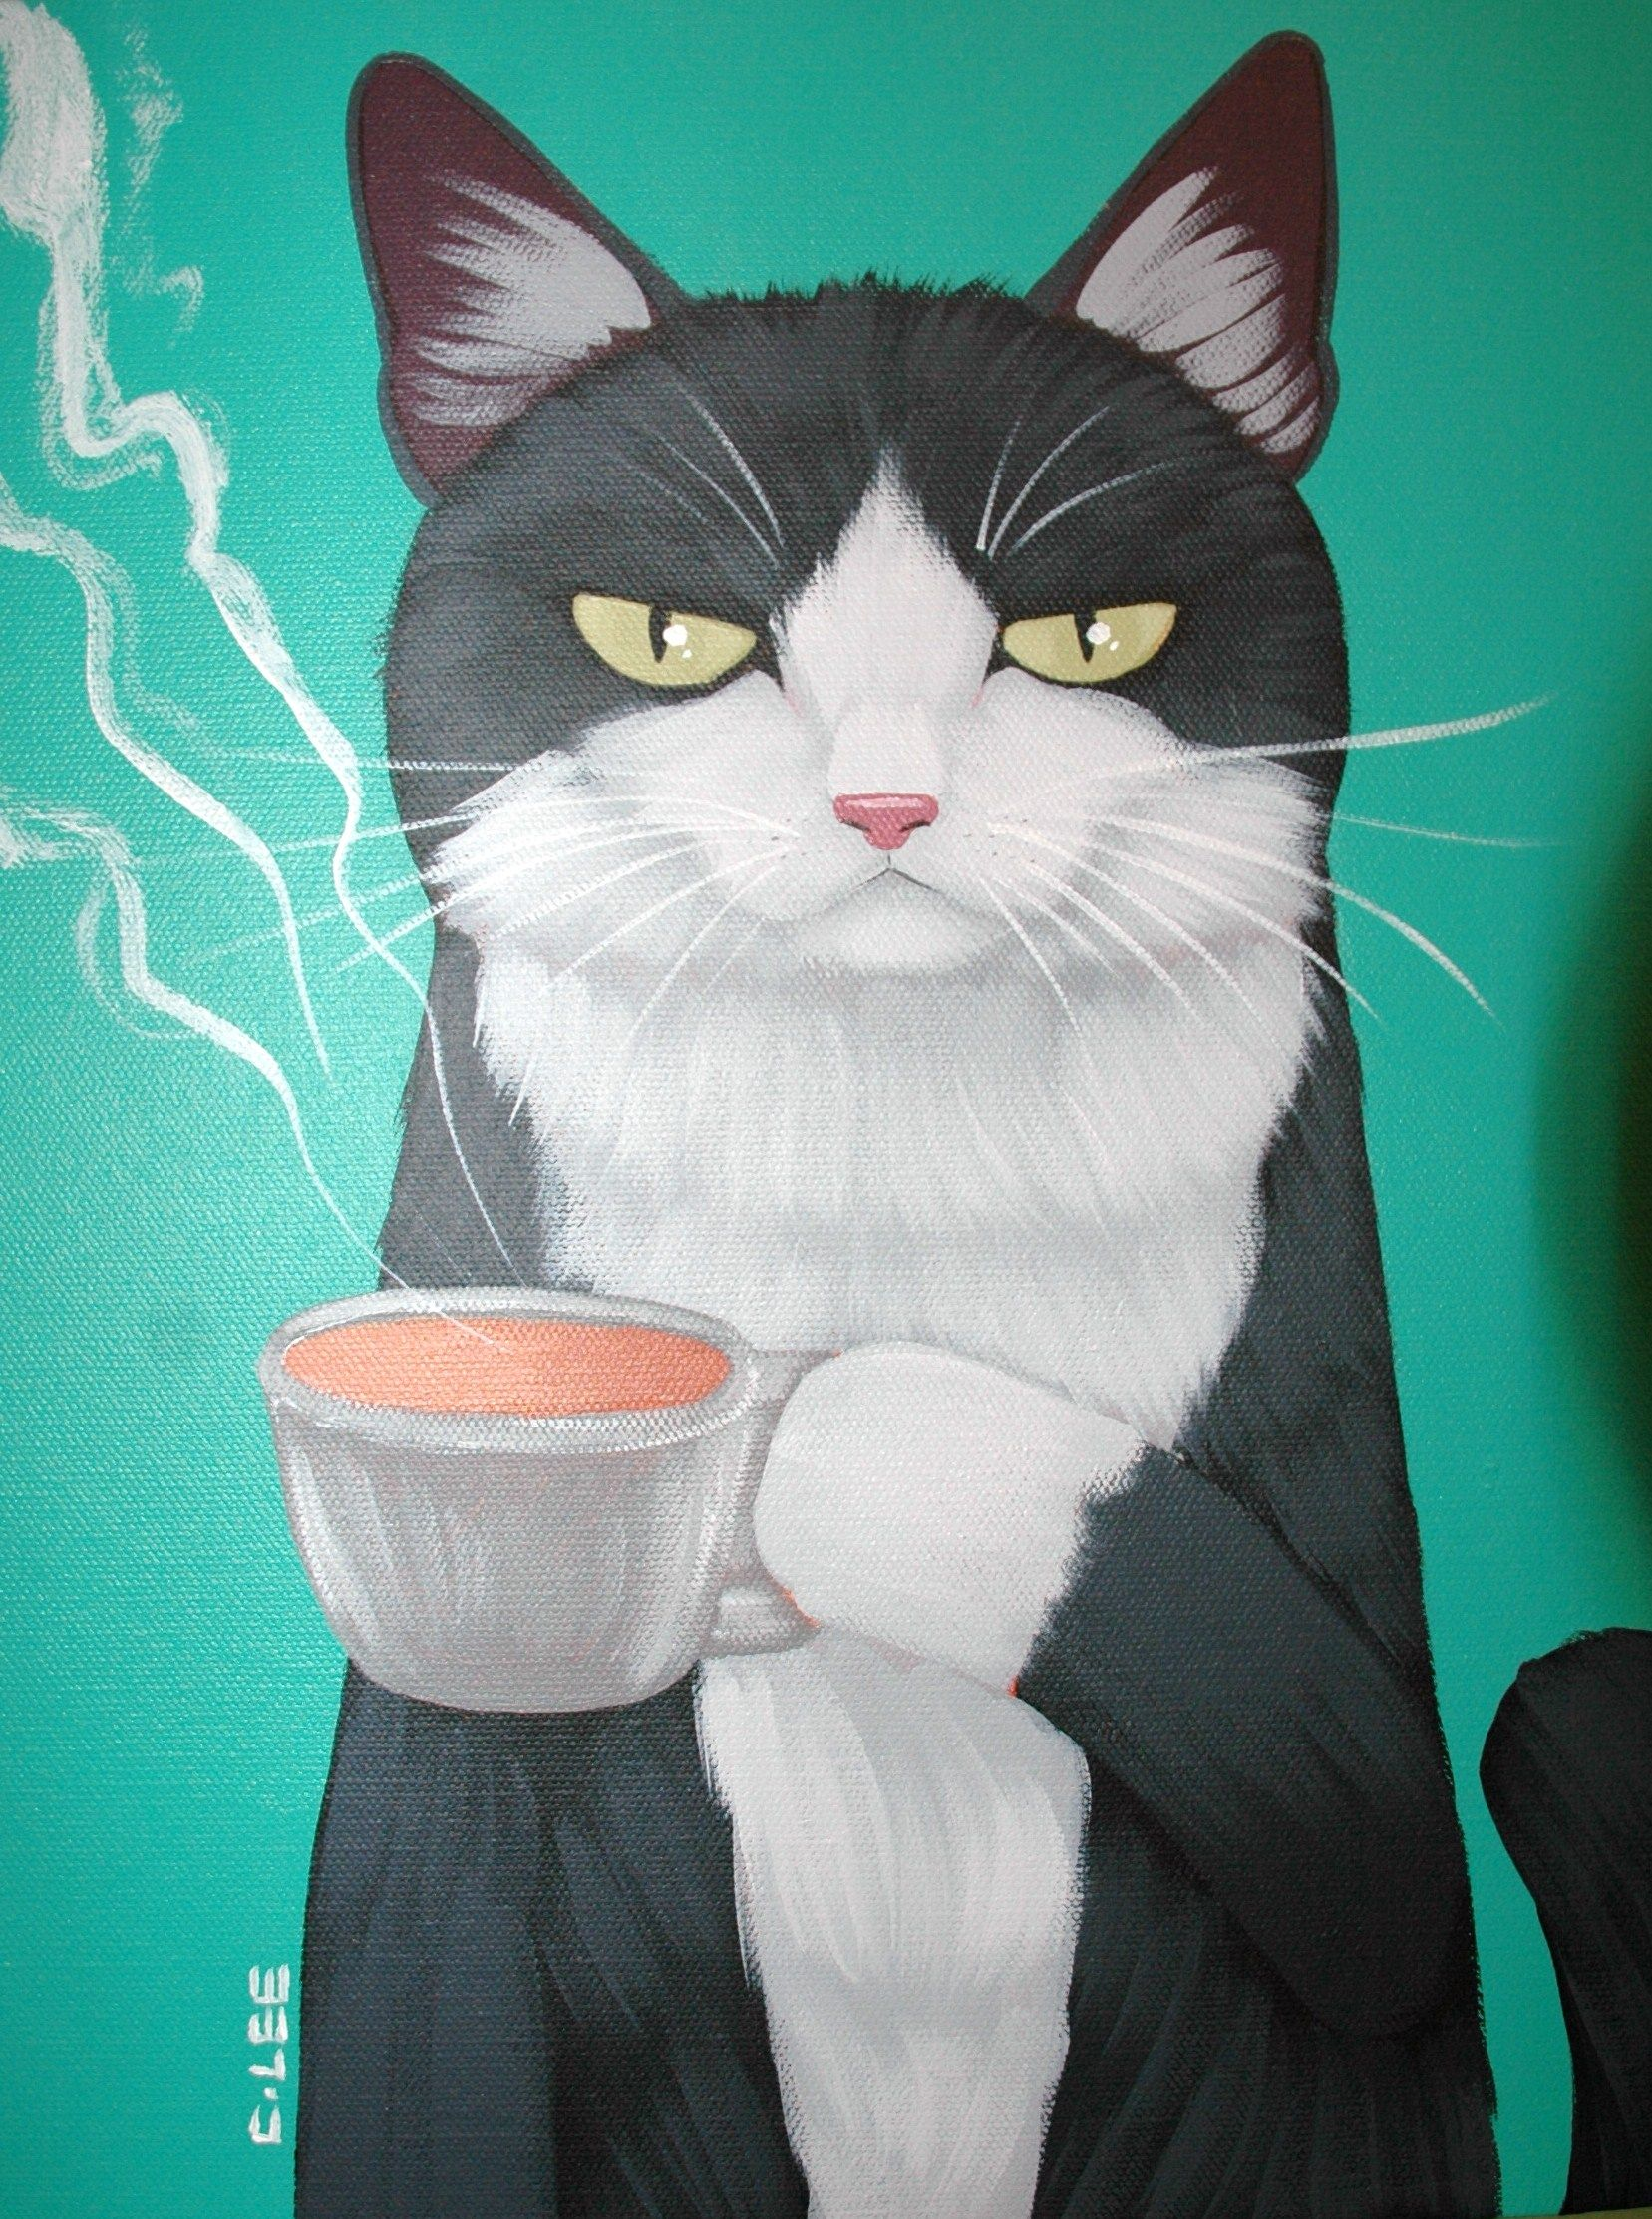 Coffee Cat is not impressed with your inferior blend